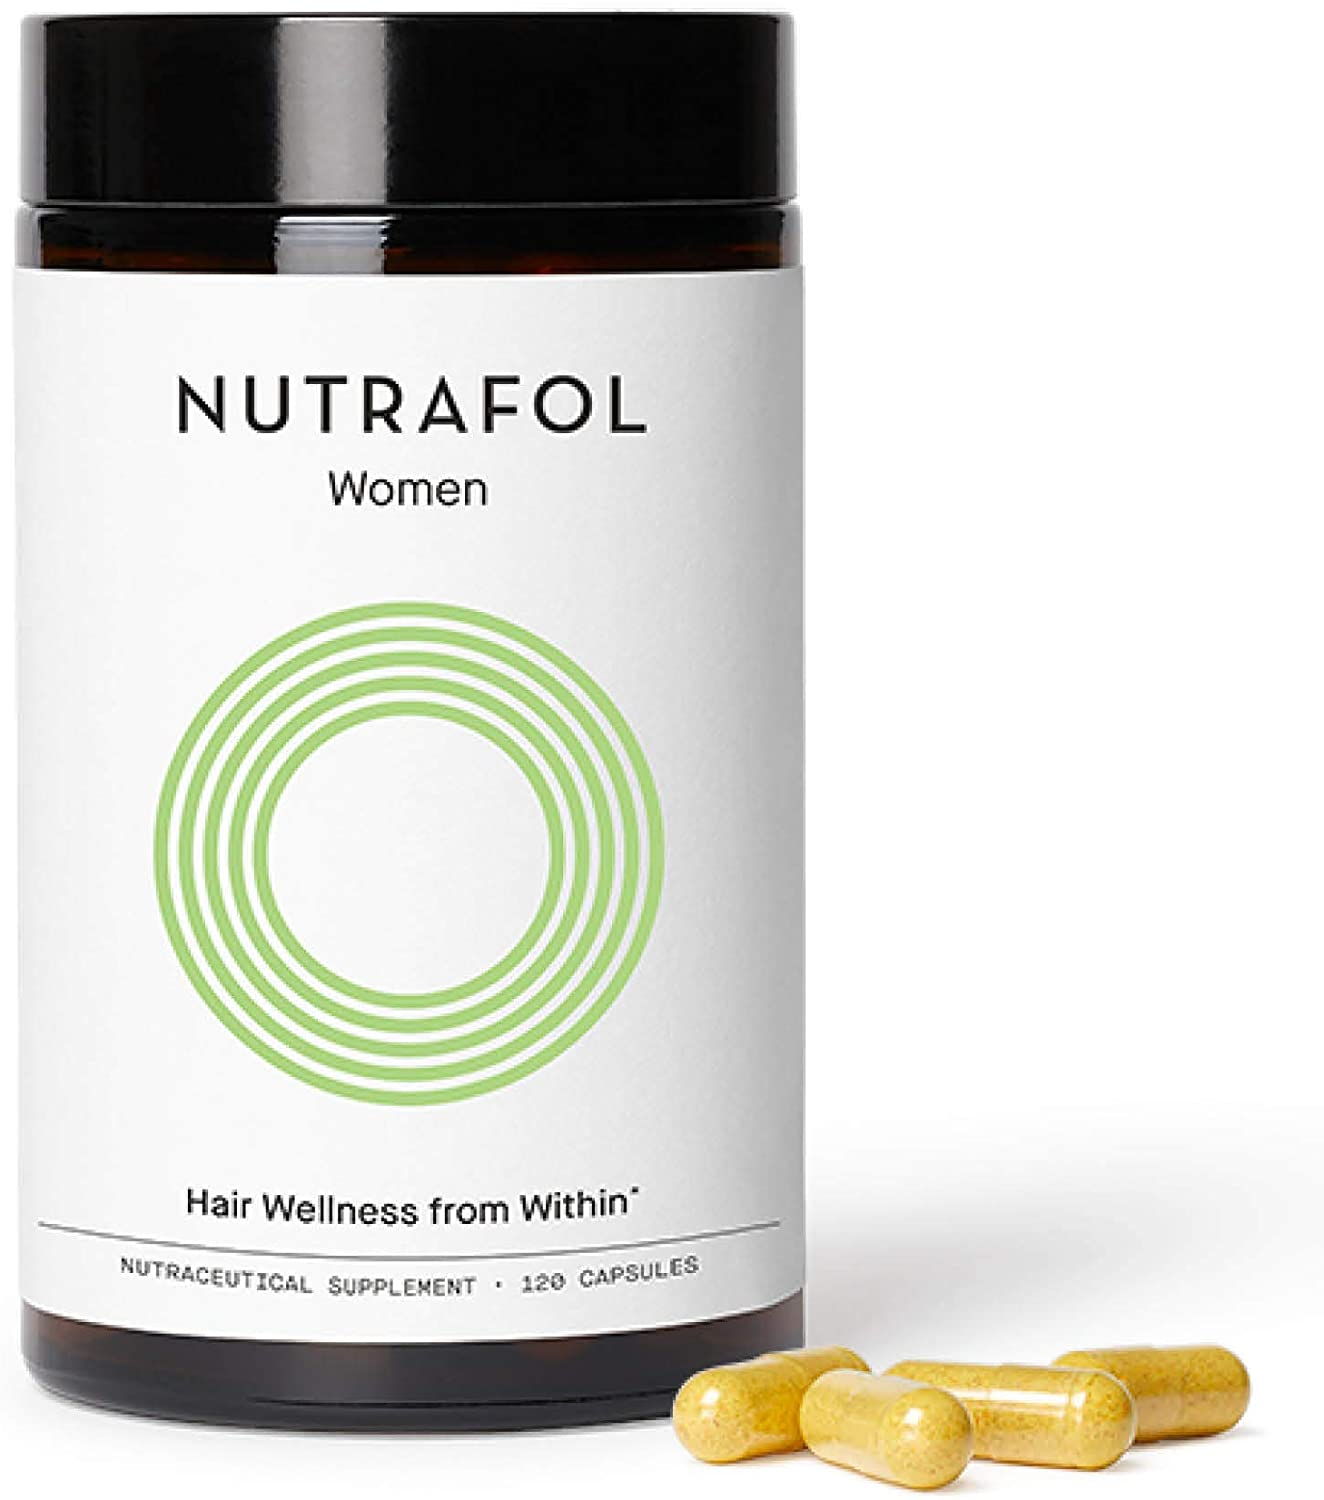 Nutrafol Women Hair Growth Supplement for Thicker, Stronger Hair